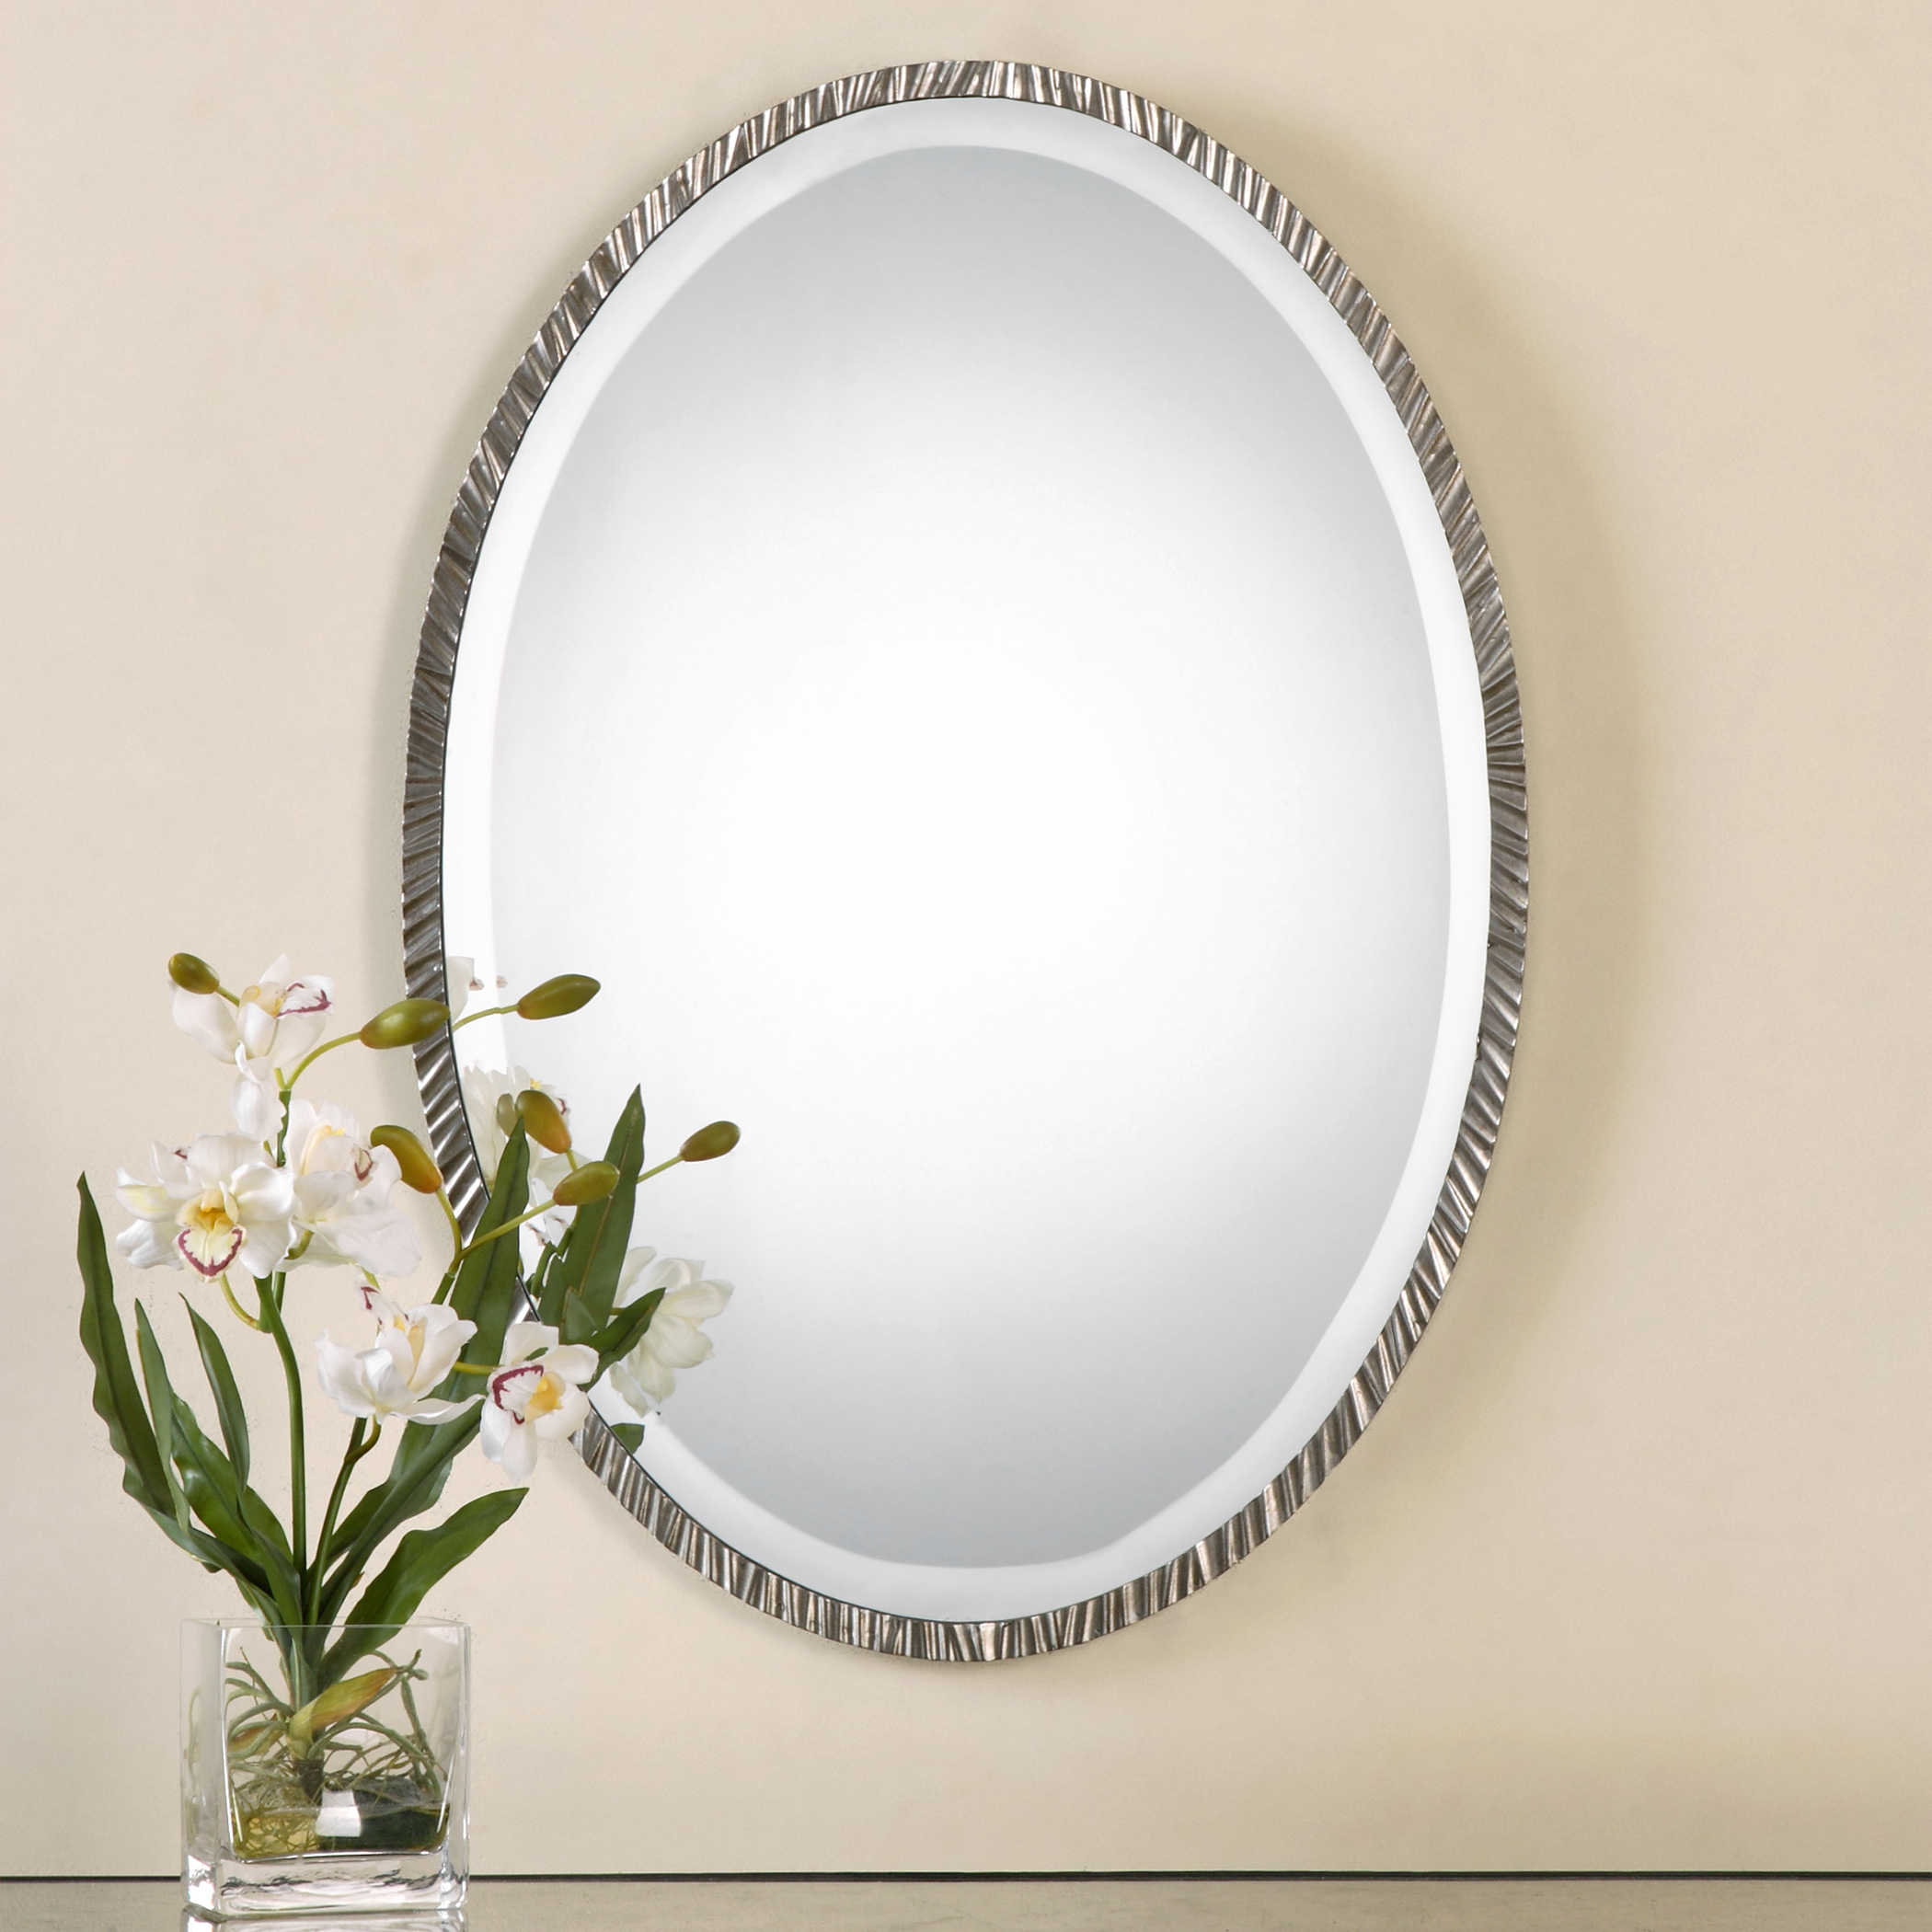 Uttermost Annadel Oval Wall Mirror Regarding Burnes Oval Traditional Wall Mirrors (Image 19 of 20)